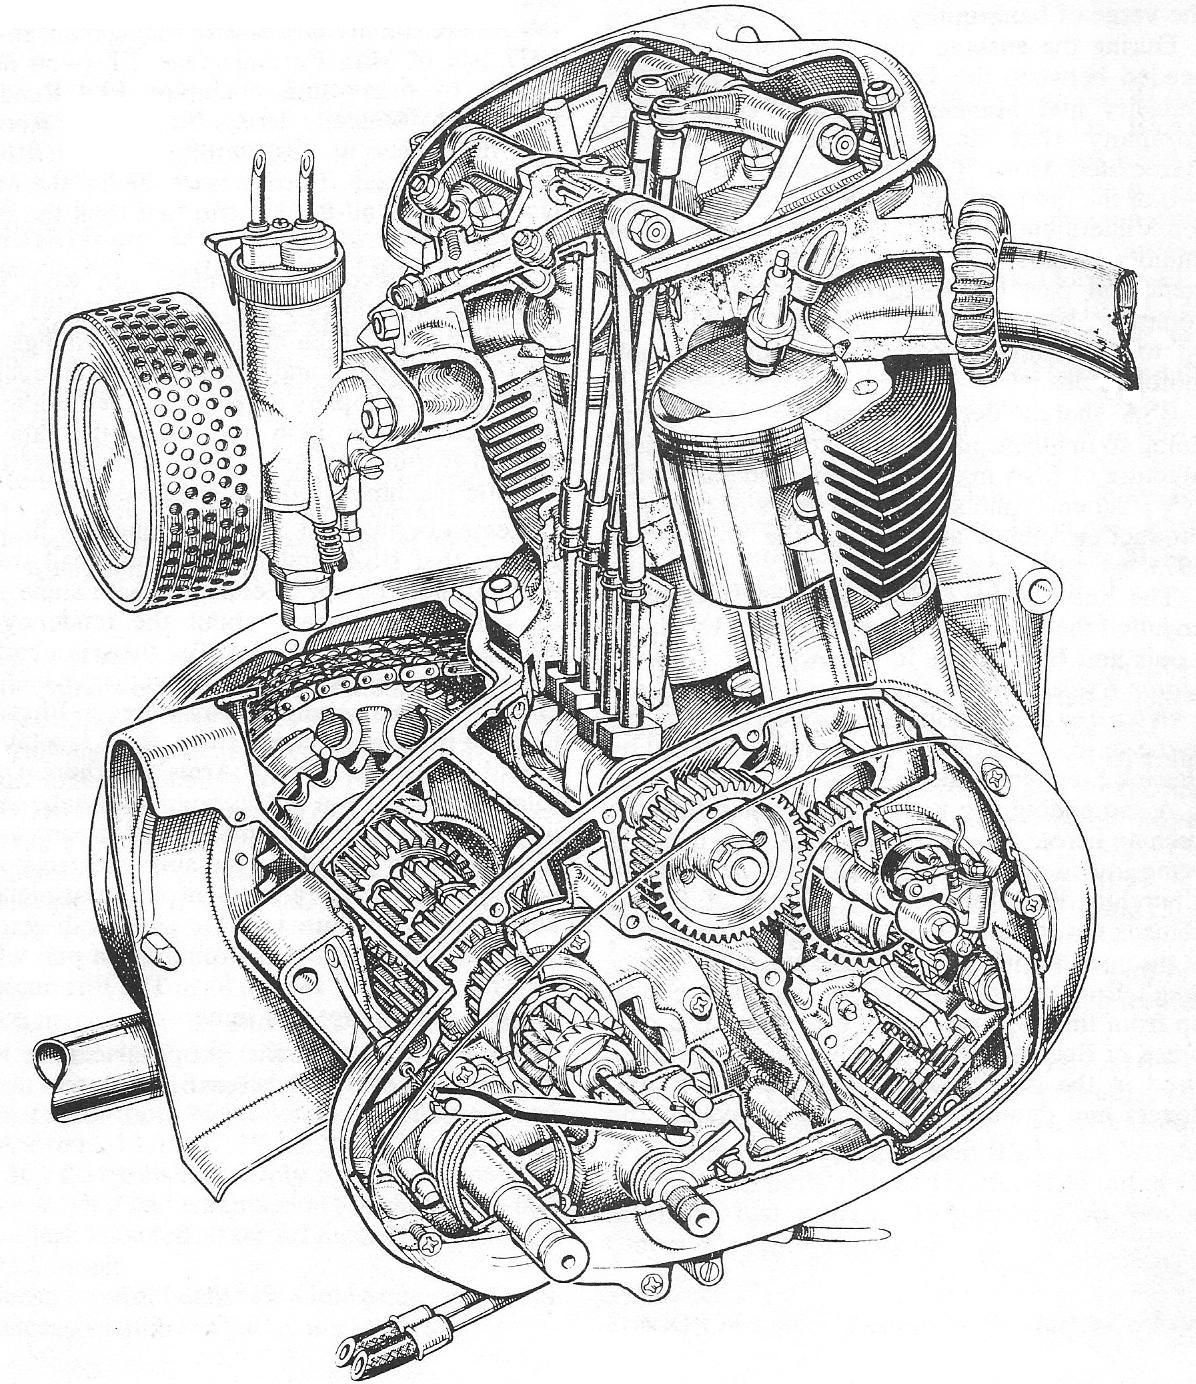 small resolution of diagram motorcycle engine art wiring diagram operations diagram motorcycle engine art